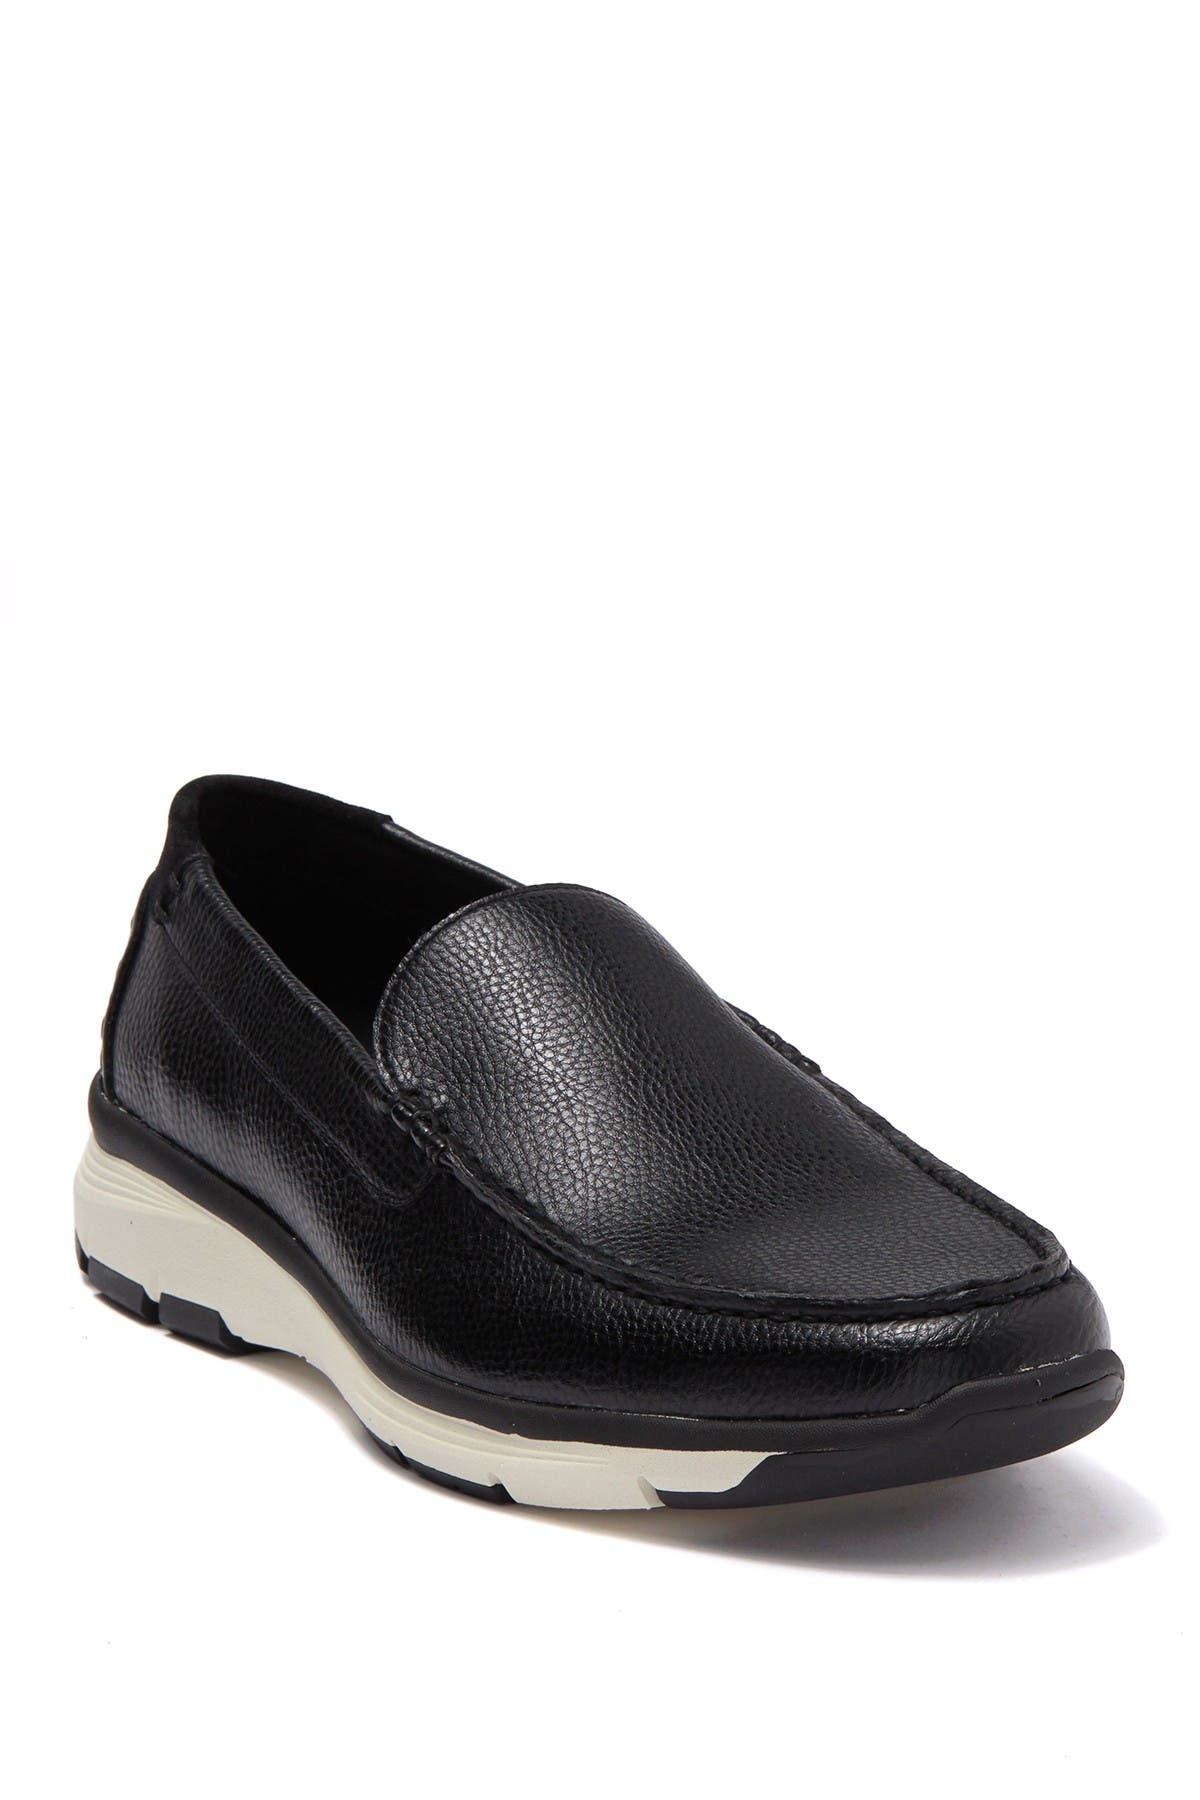 Men's Loafers \u0026 Slip-Ons Clearance